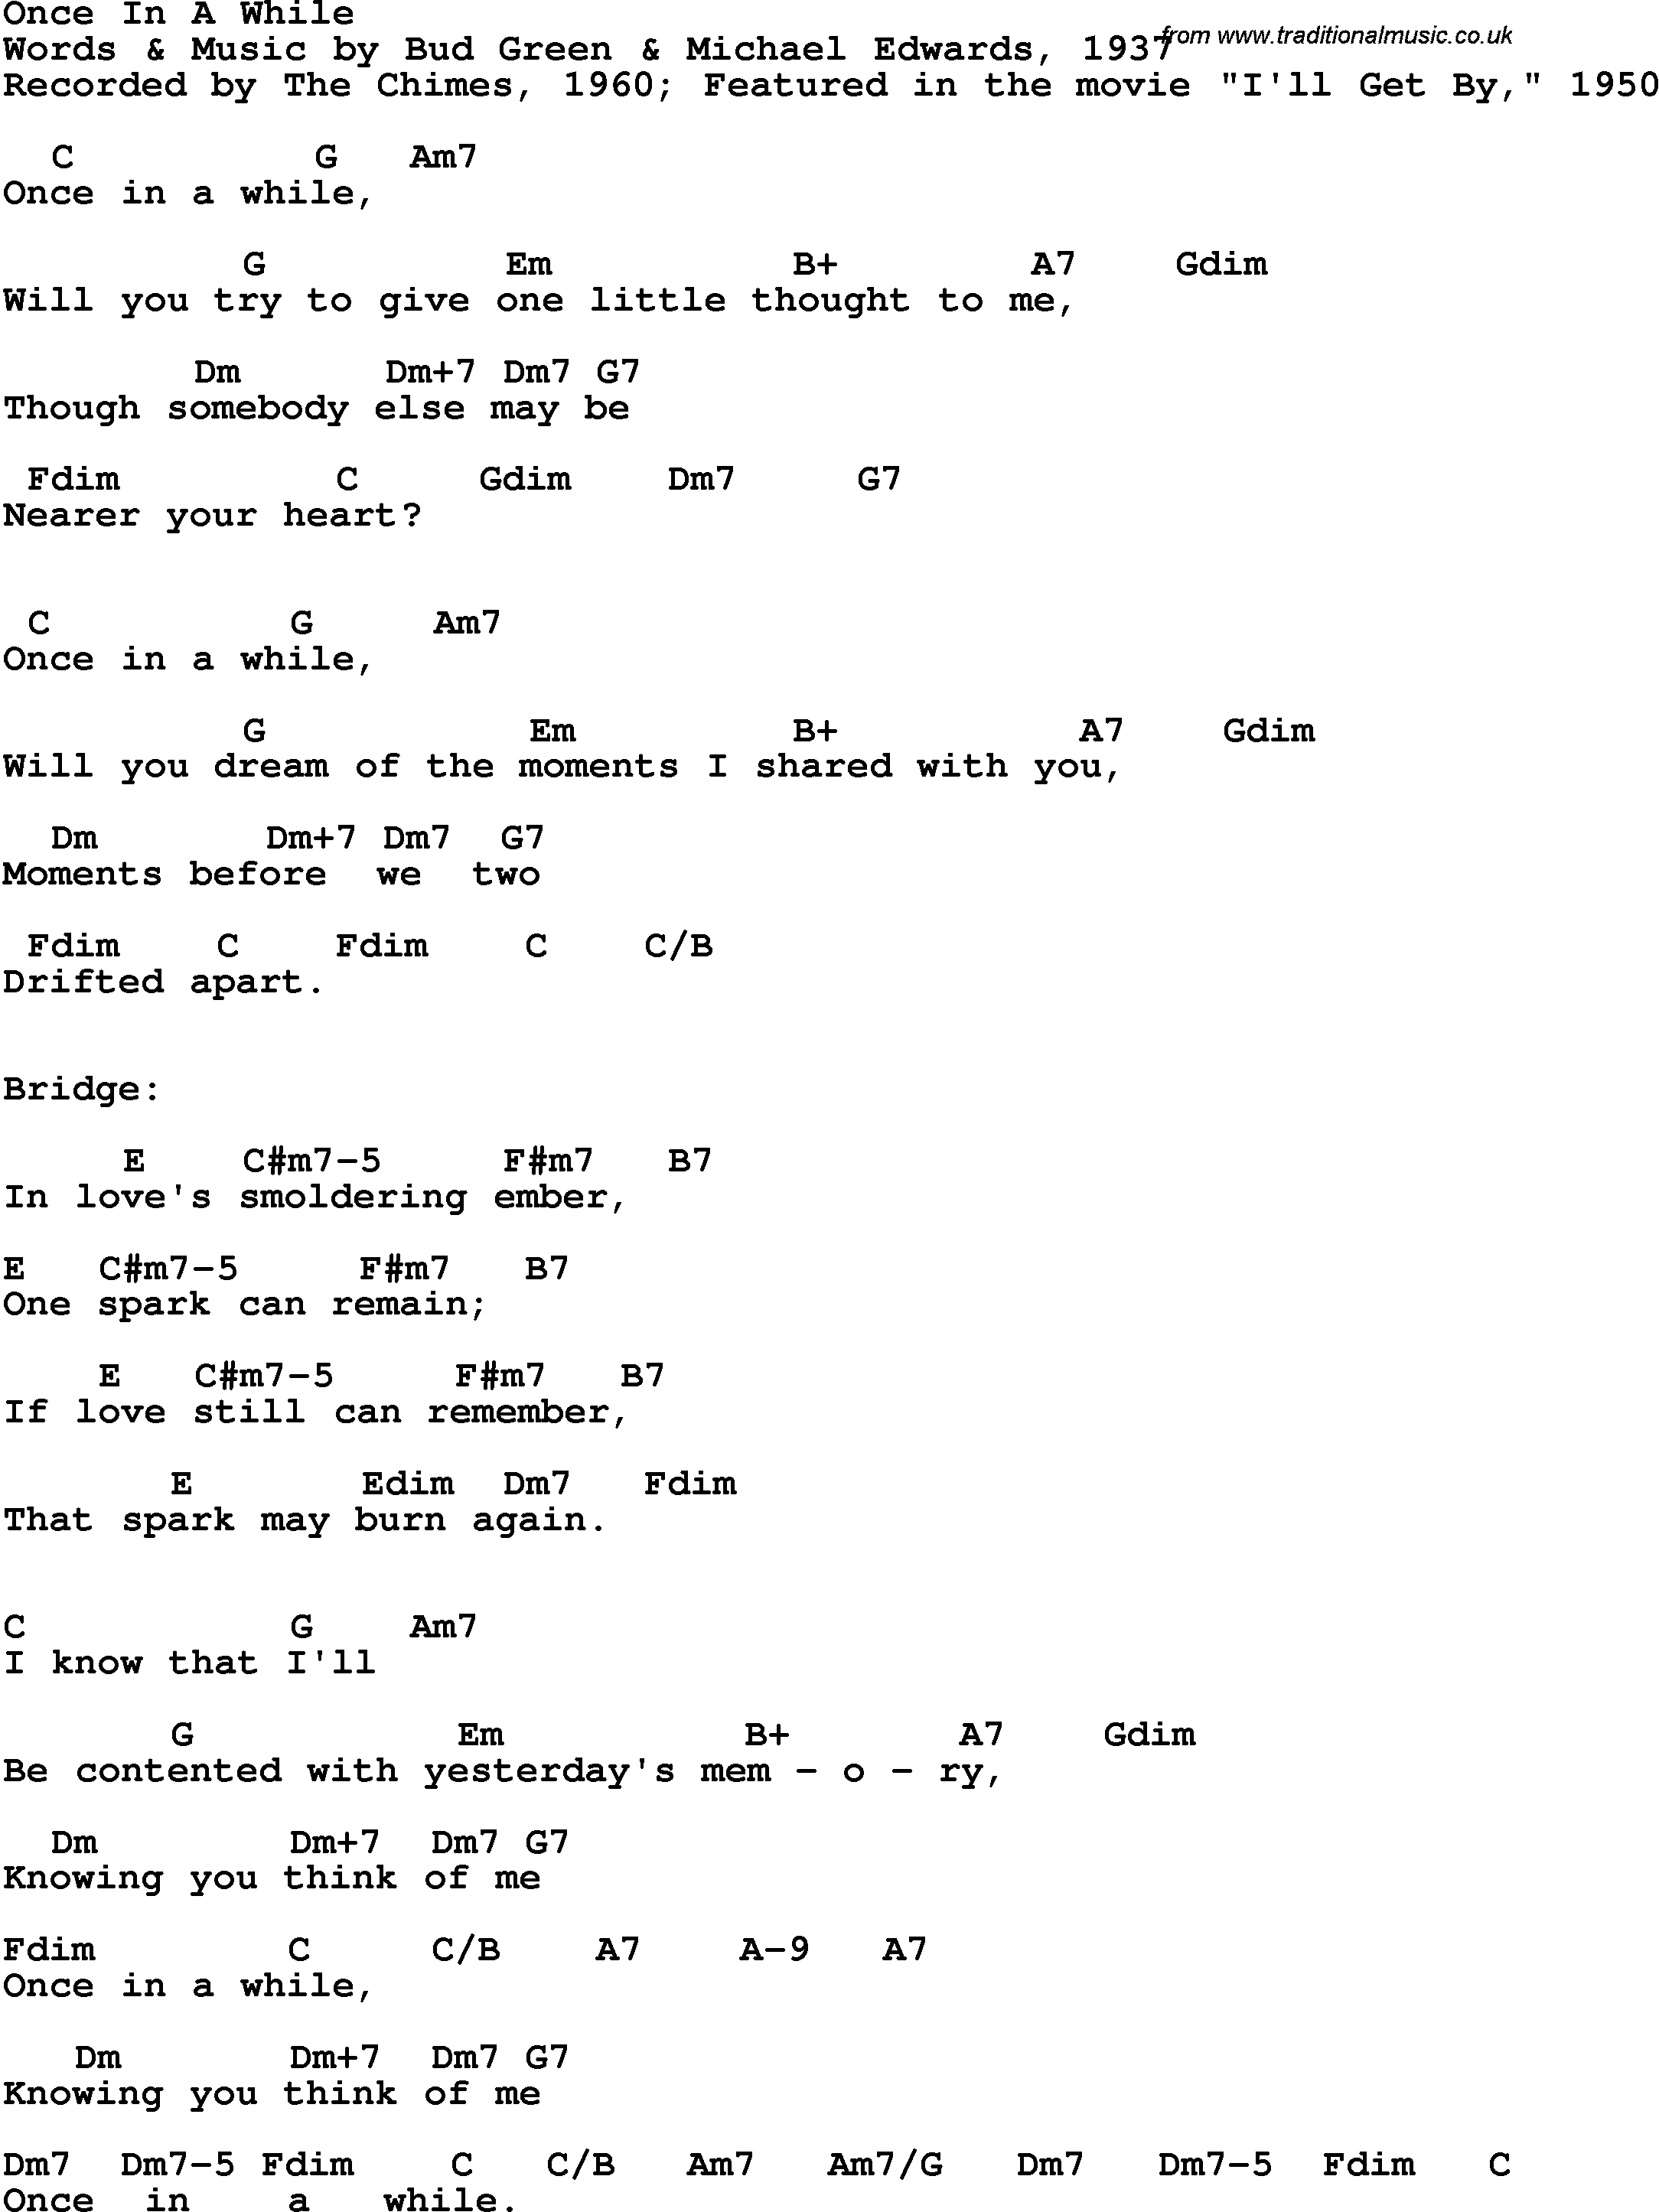 Song Lyrics With Guitar Chords For Once In A While The Chimes 1960